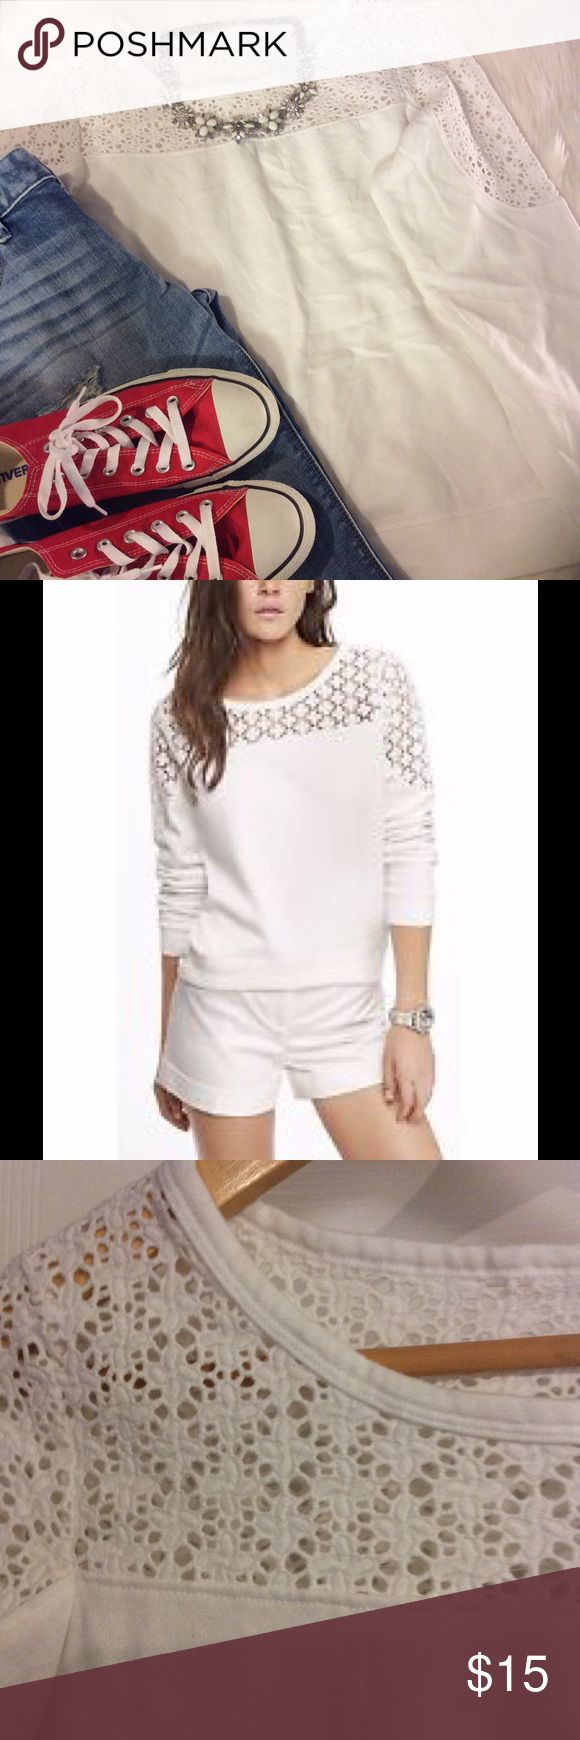 Express White Crochet Top Sweatshirt New spin on your average sweatshirt! Perfect for casual outings. Express Tops Sweatshirts & Hoodies